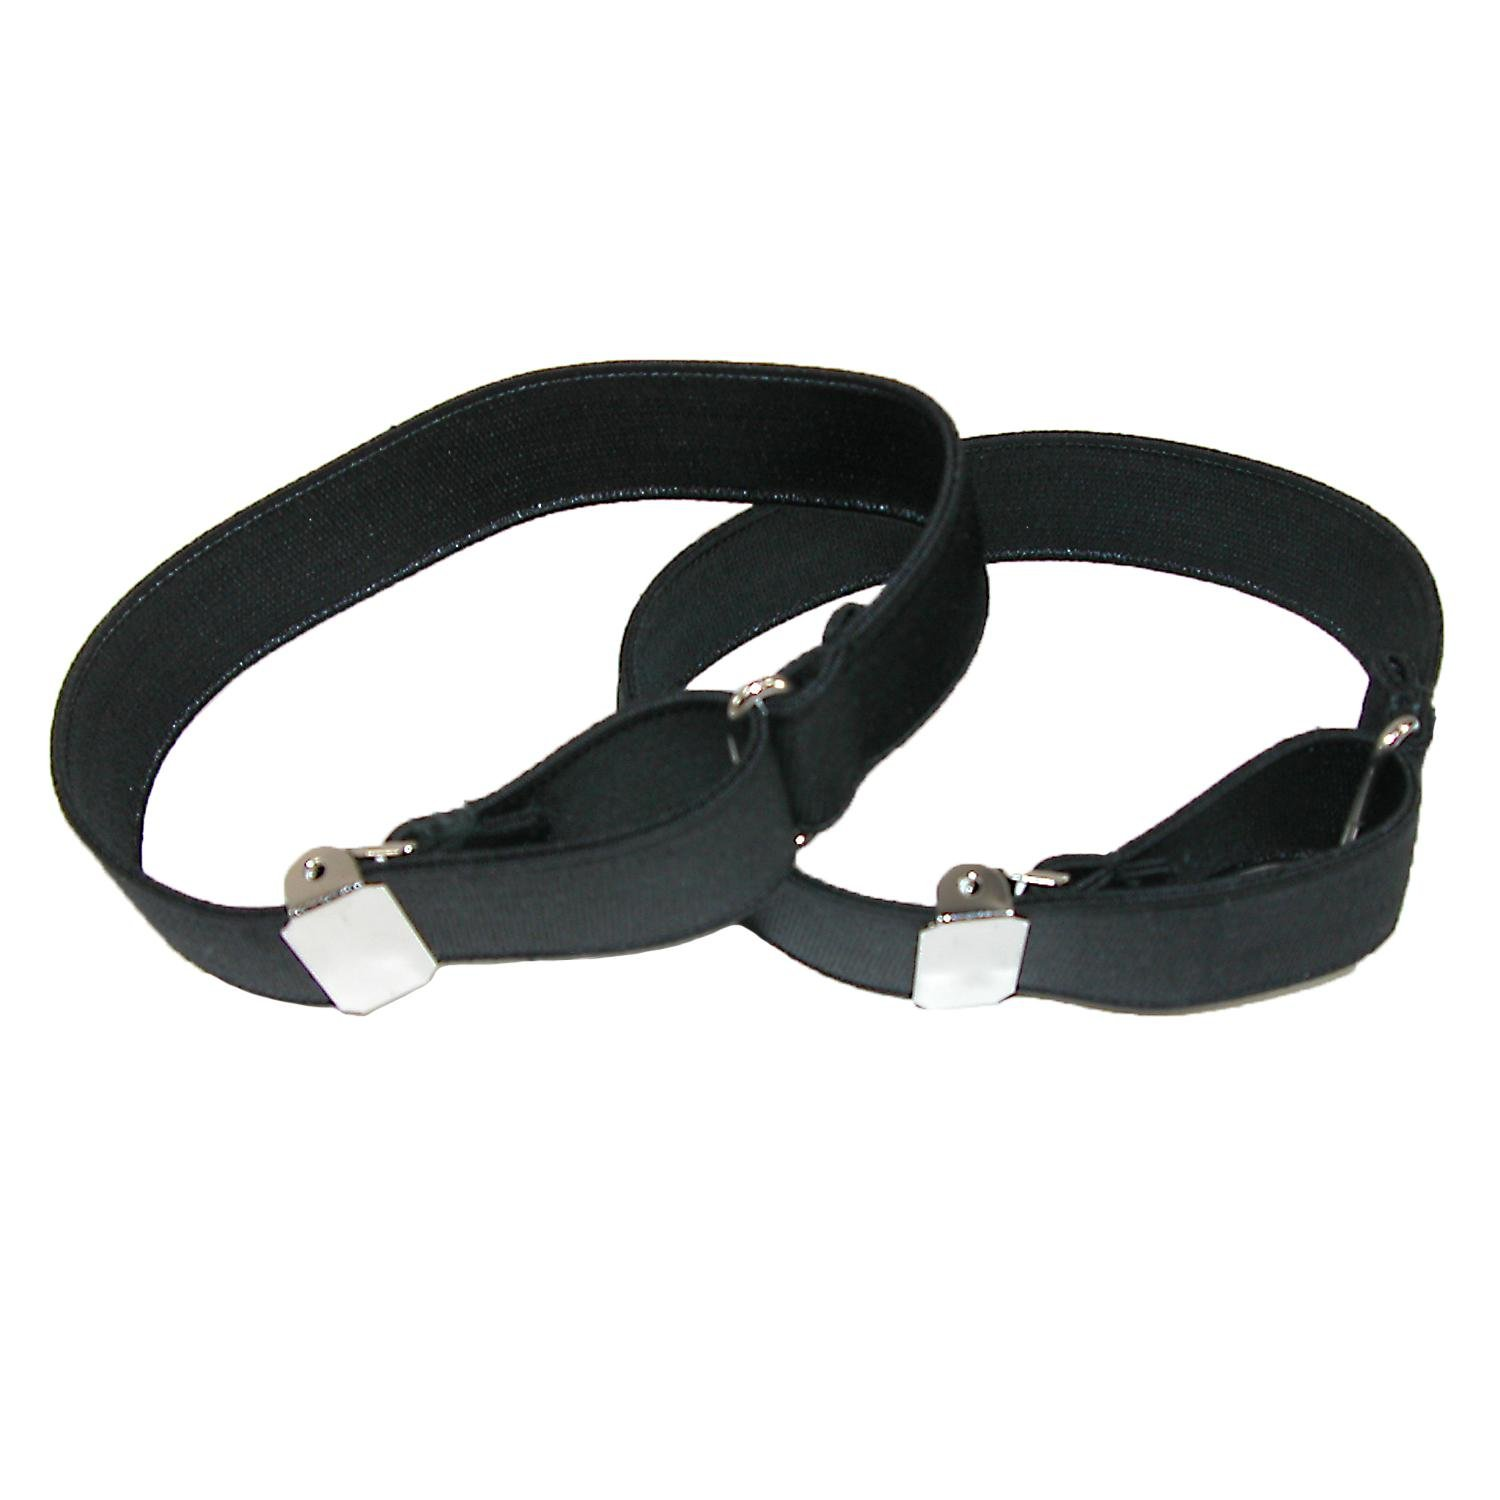 1920s Fashion for Men Armband Sleeve Garter CTM Satin Elastic Solid Color Adjustable $14.94 AT vintagedancer.com